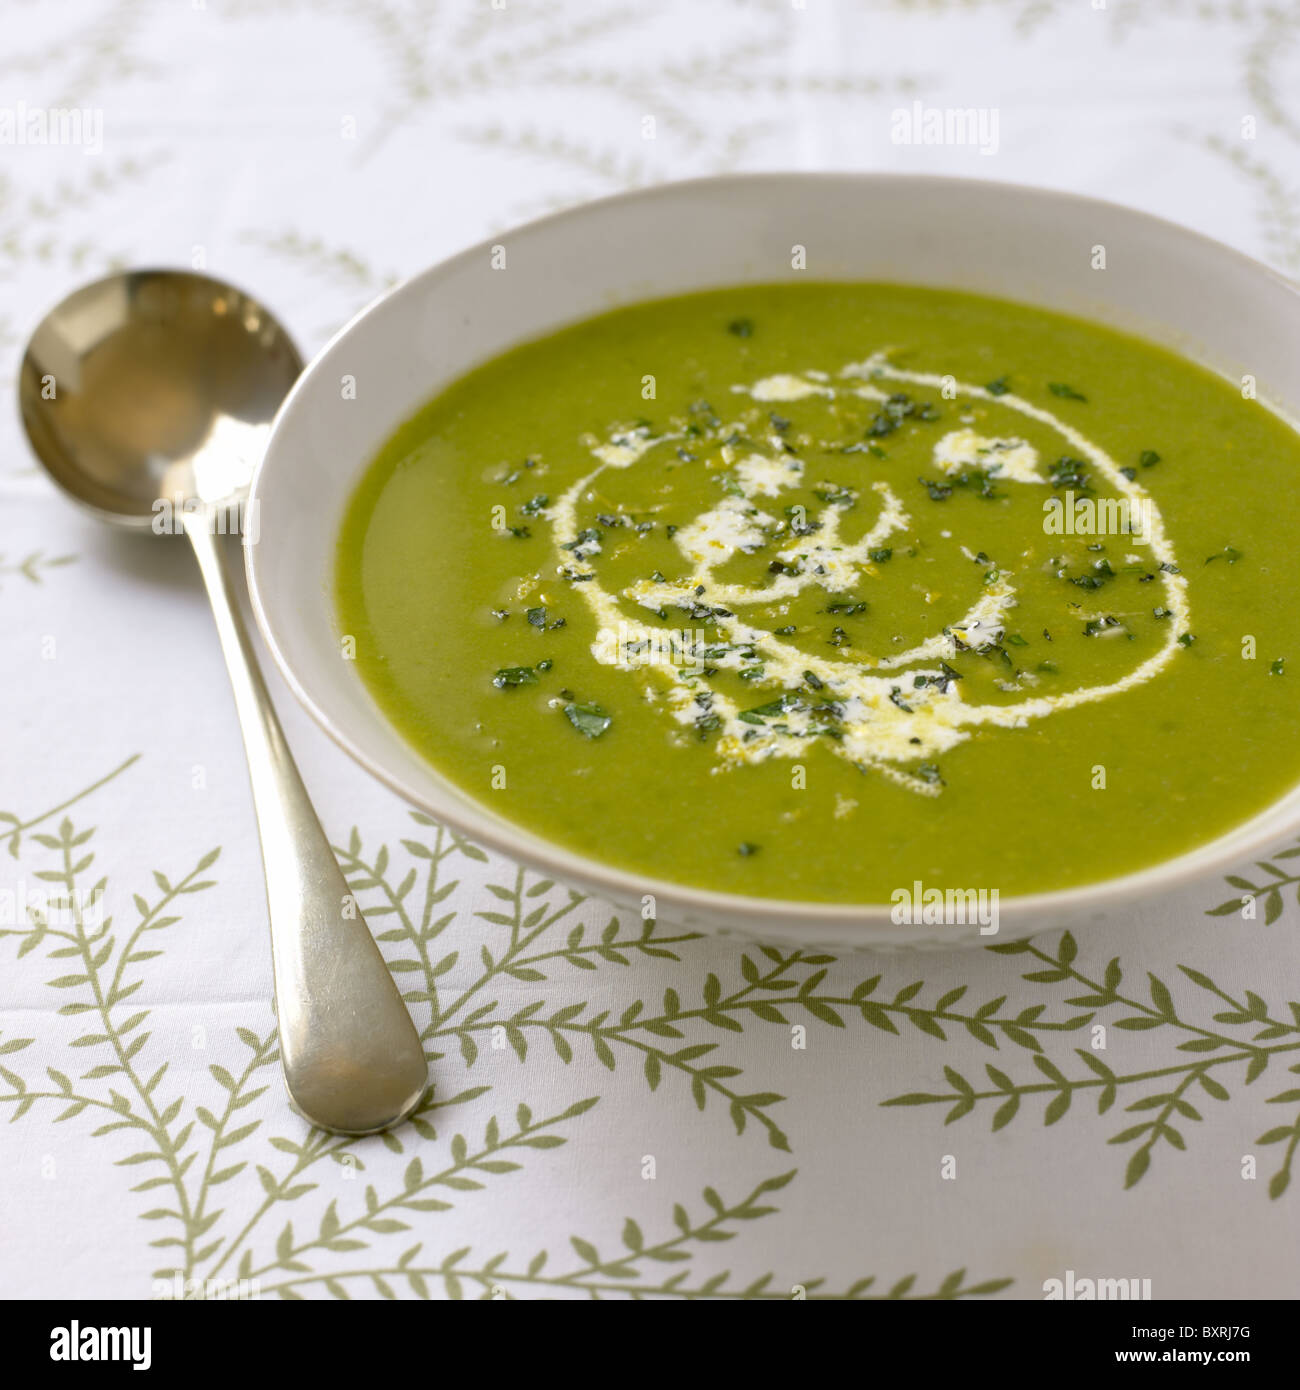 Pea soup with mint gremolata - Stock Image